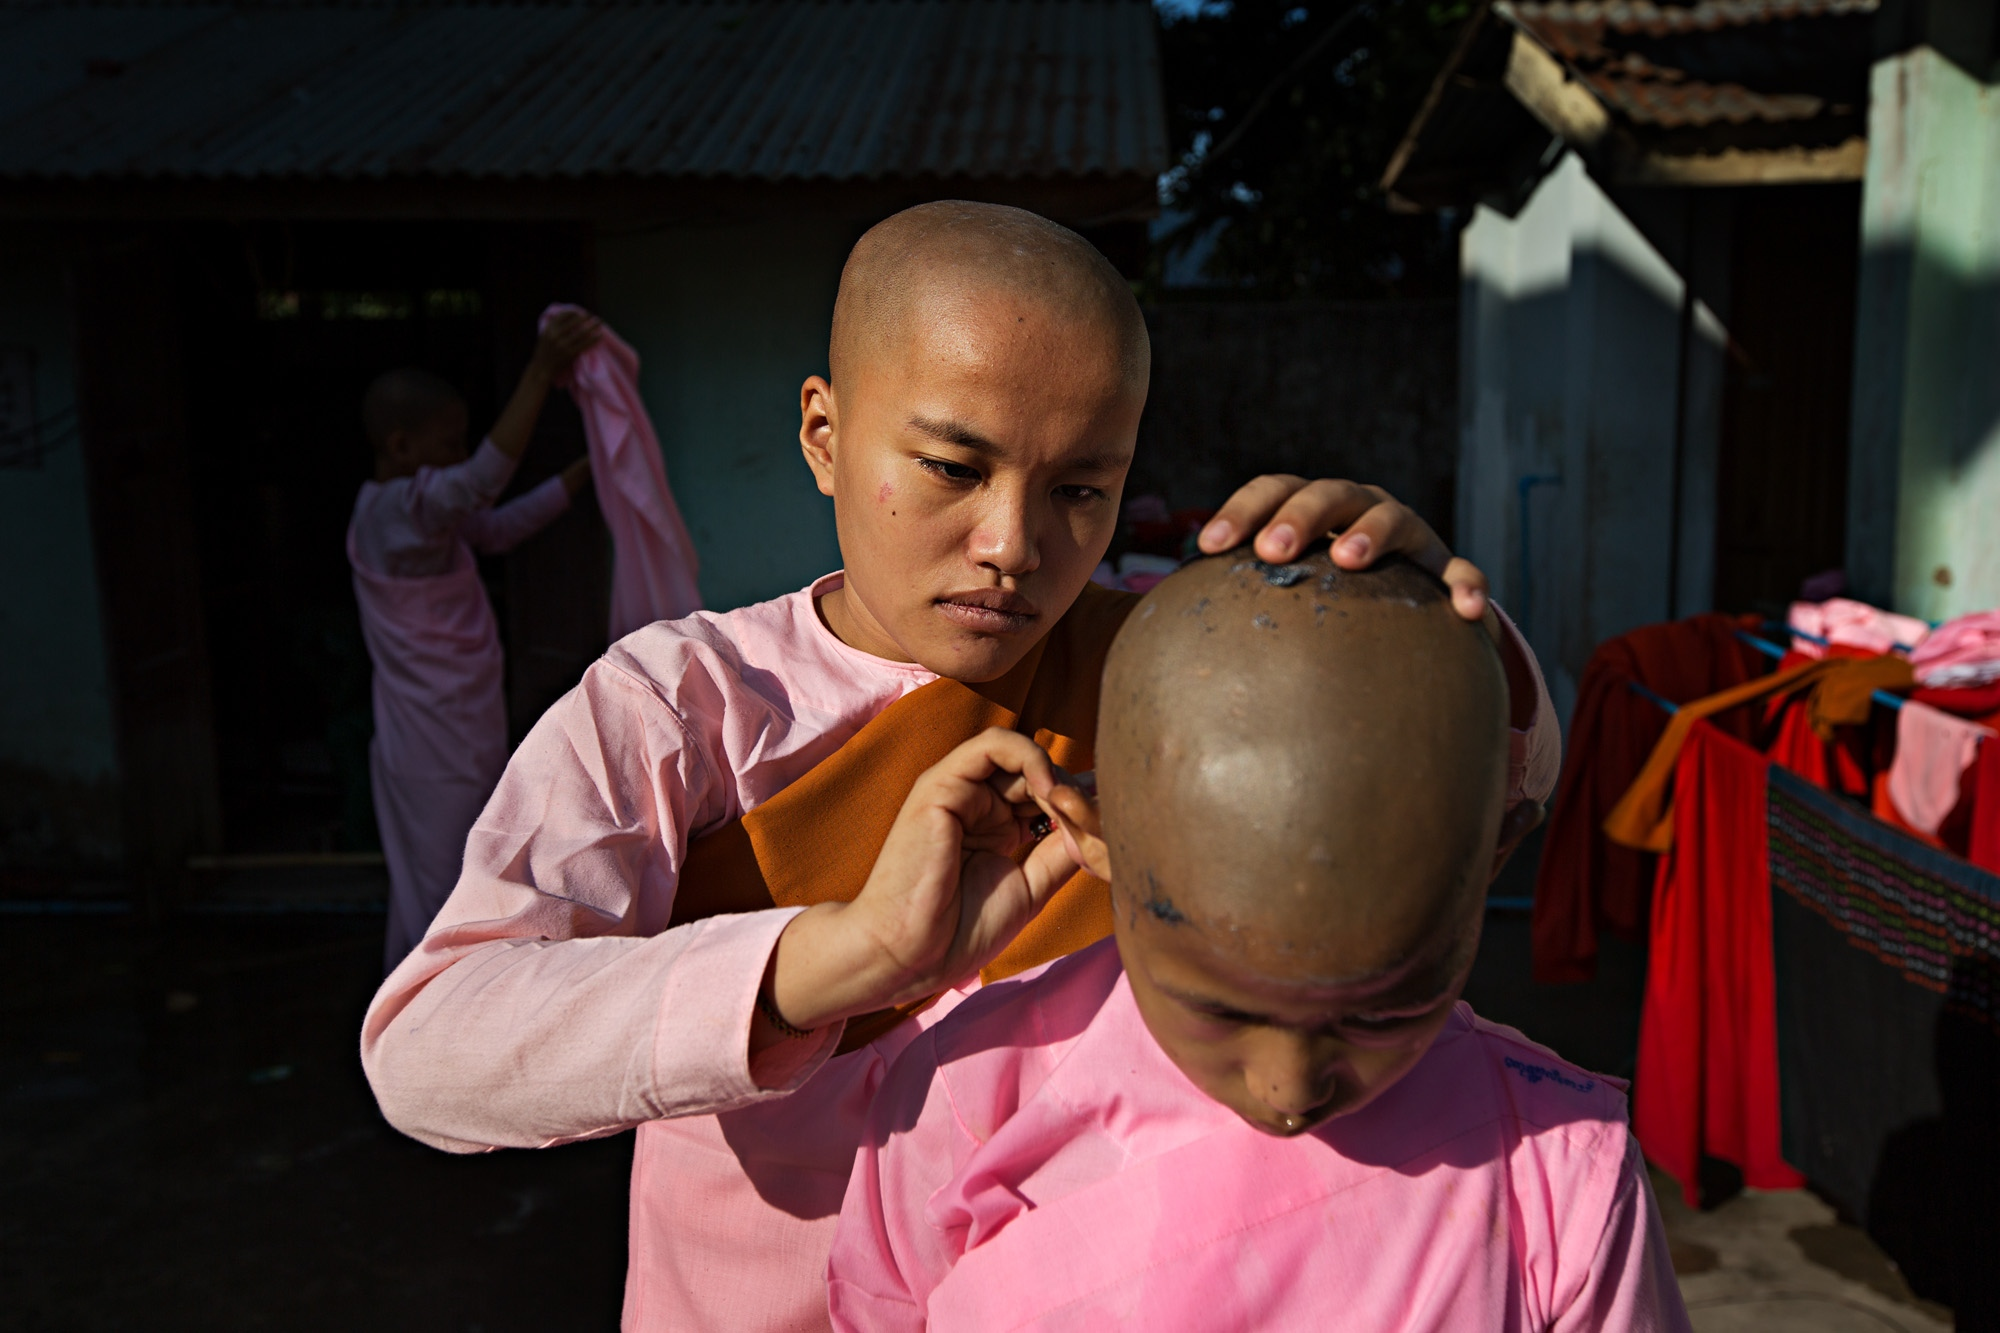 Ma Yu Mar Lar shaves shaves the head of her friend and fellow novice, Buddhist nun at a monstery in Yangon. Buddhist nuns live very simply and do not enjoy the same status and reverence as their male counterparts. Both nuns and monks gather alms each day, but the nuns are expected to also give food to the monks.